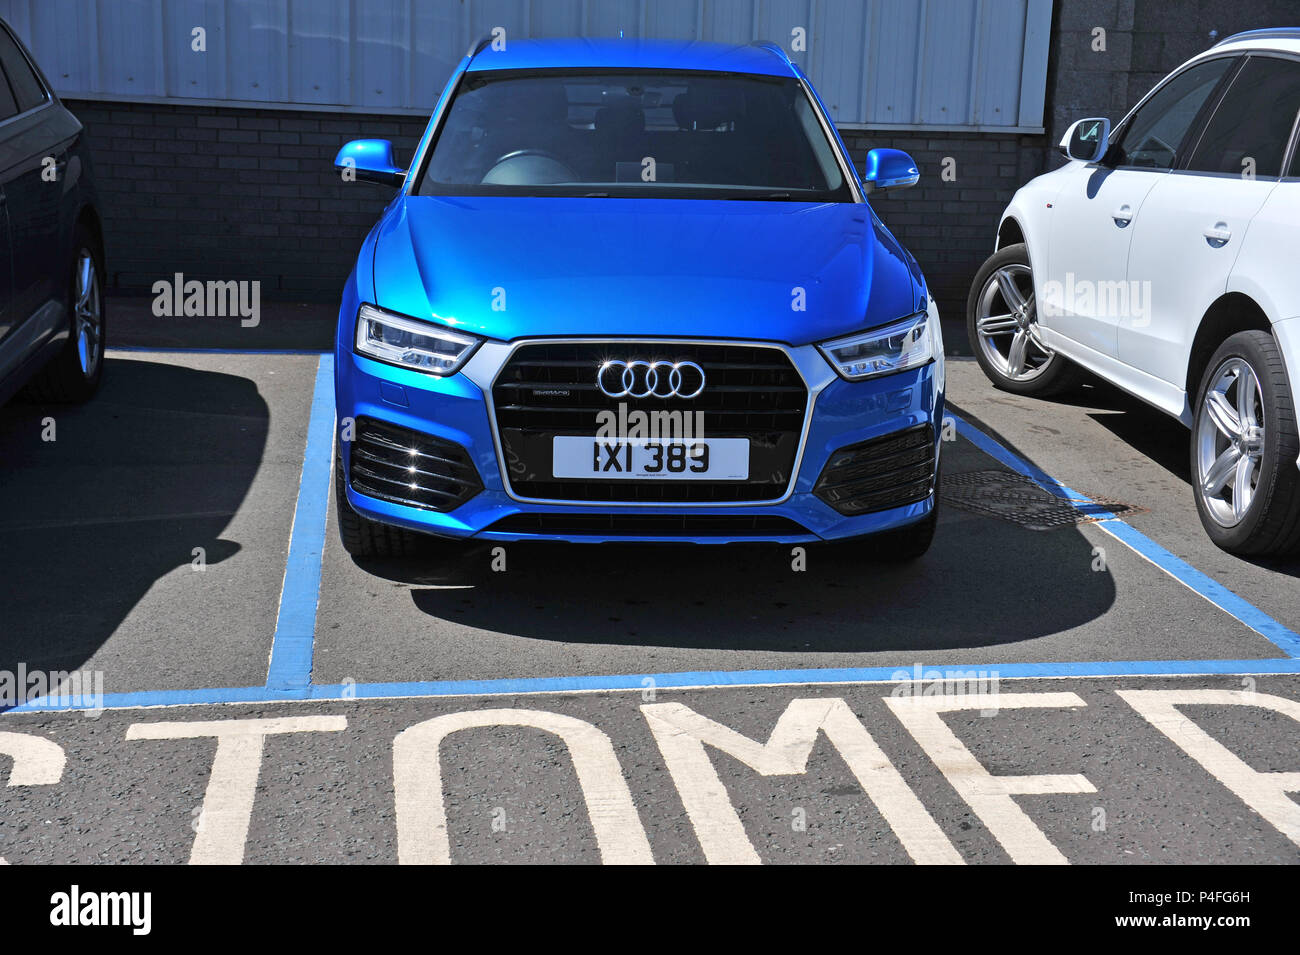 Blue Audi High Resolution Stock Photography And Images Alamy